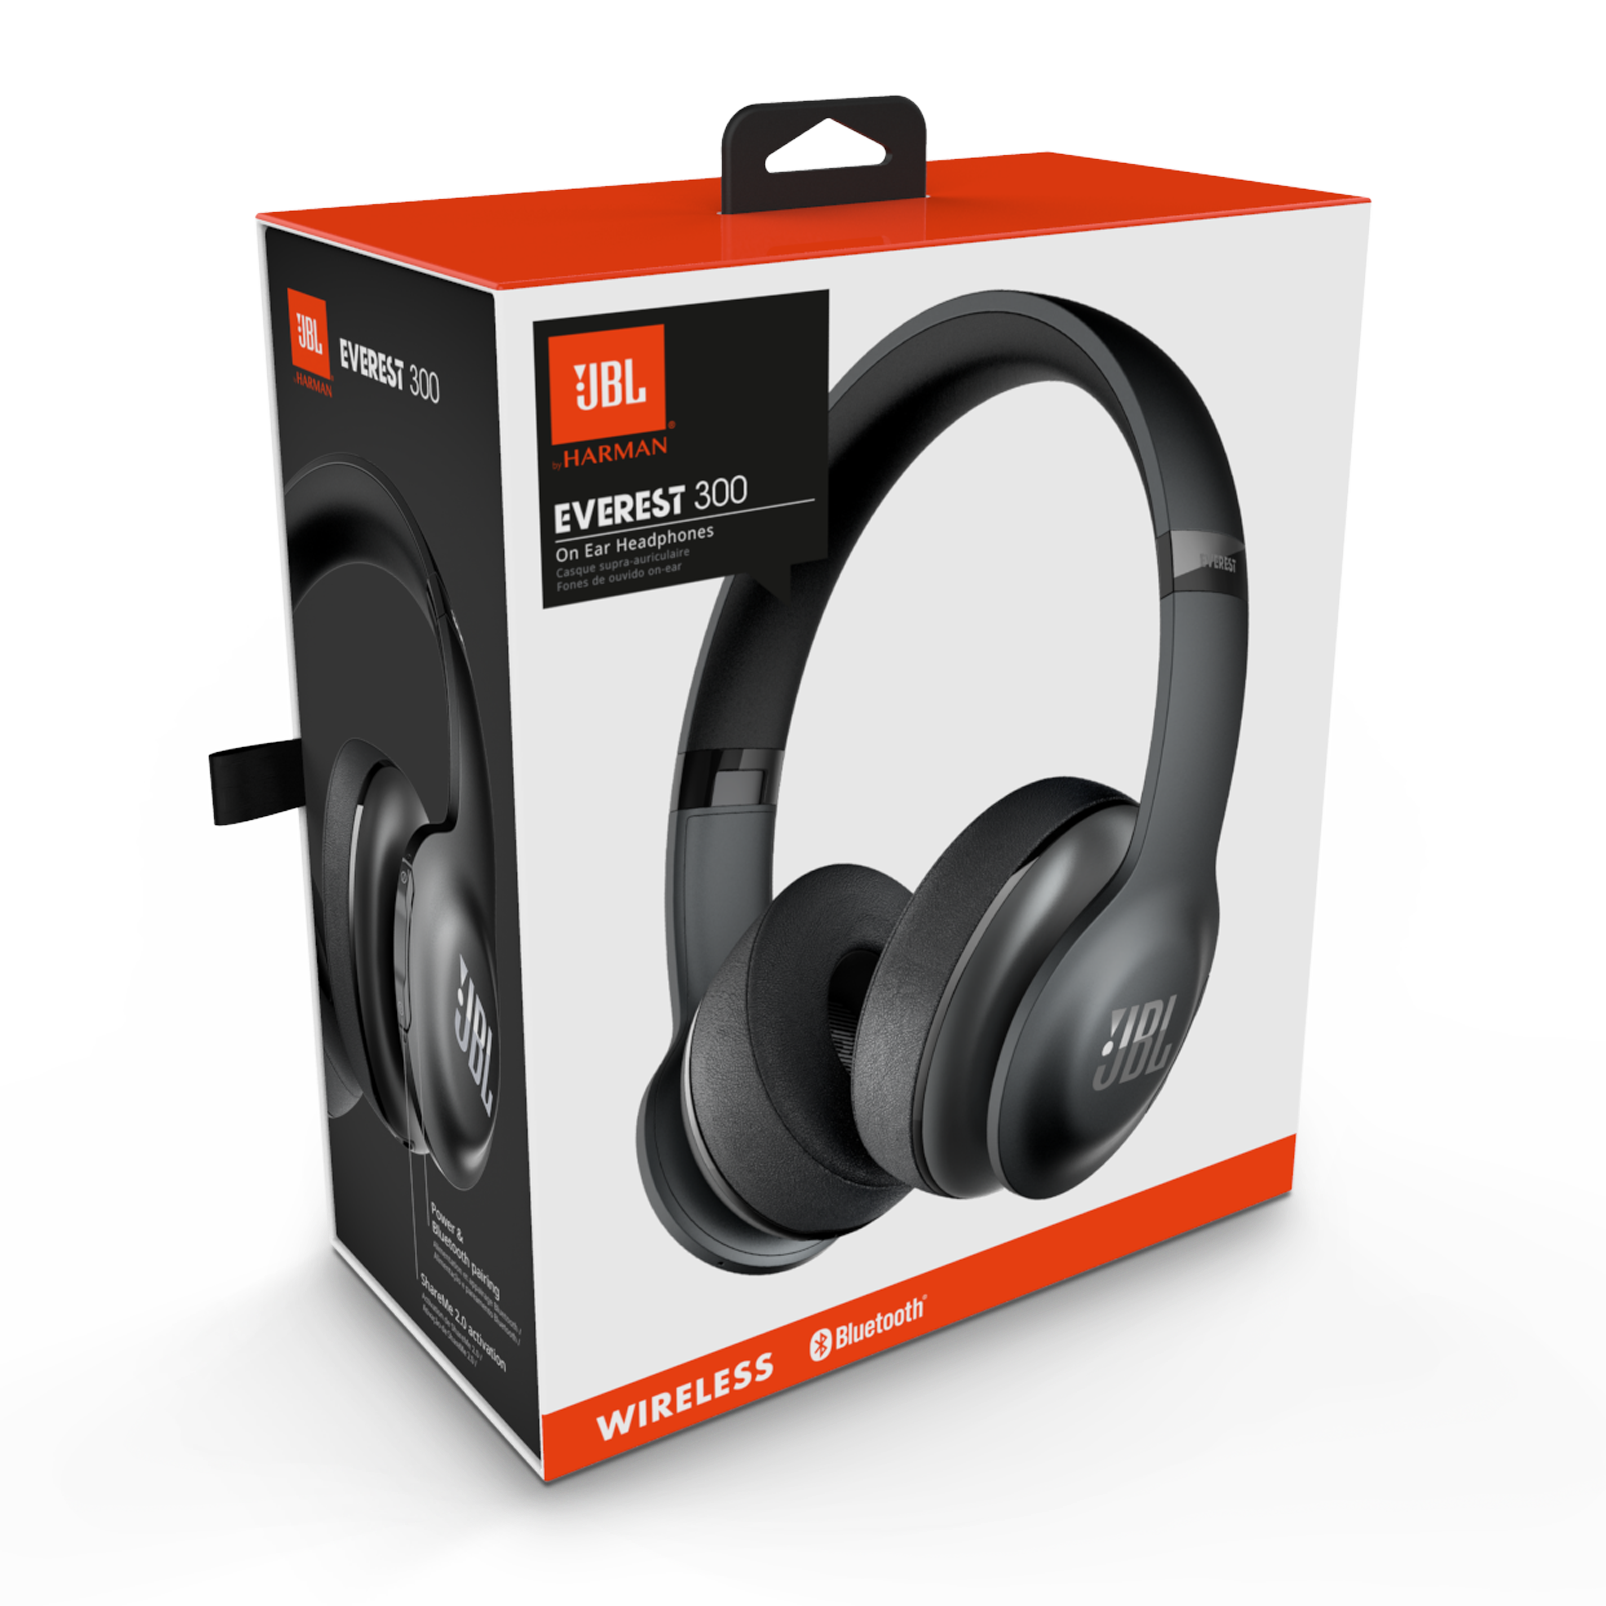 Jbl Everest 300 Bluetooth Headphones With 20 Hour Battery